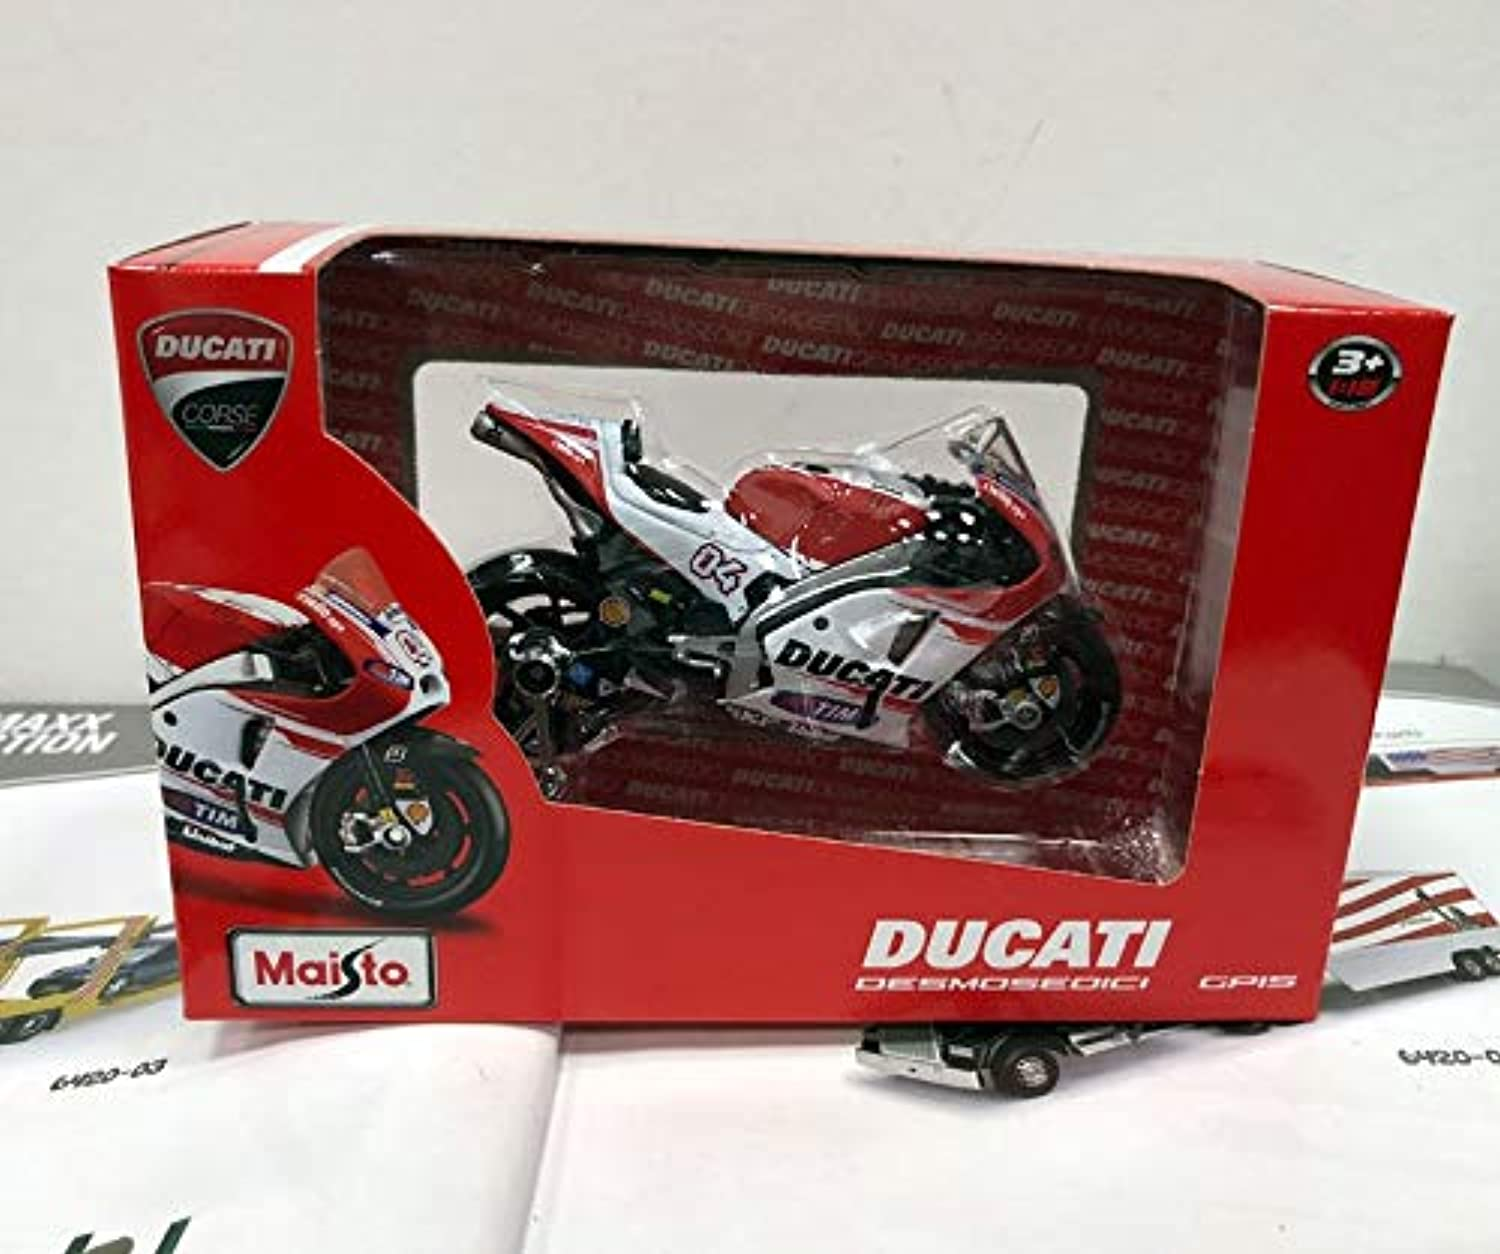 Generic MAISTO 1 18 Scale Ducati Desmosedici Racing Motorbike Diecast Metal Motorcycle Model Toy for Gift Kids Collection NO 4